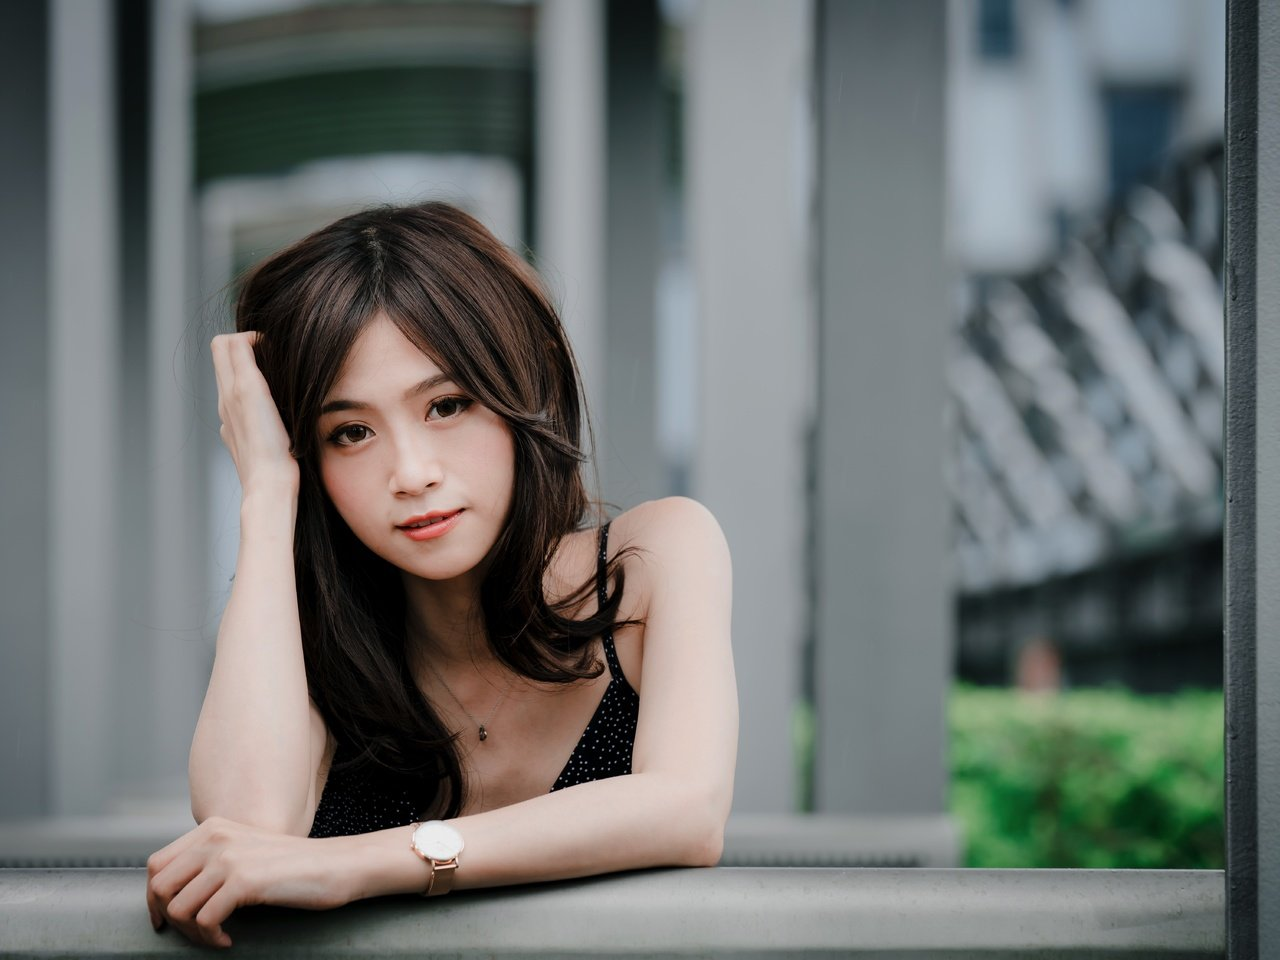 stafford asian girl personals The amwf social network is a online community for asian guys and white girls, black girls, hispanic girls, asian girls, etc our focus is to foster friendship or relationship between asian guys and girls who admire them.